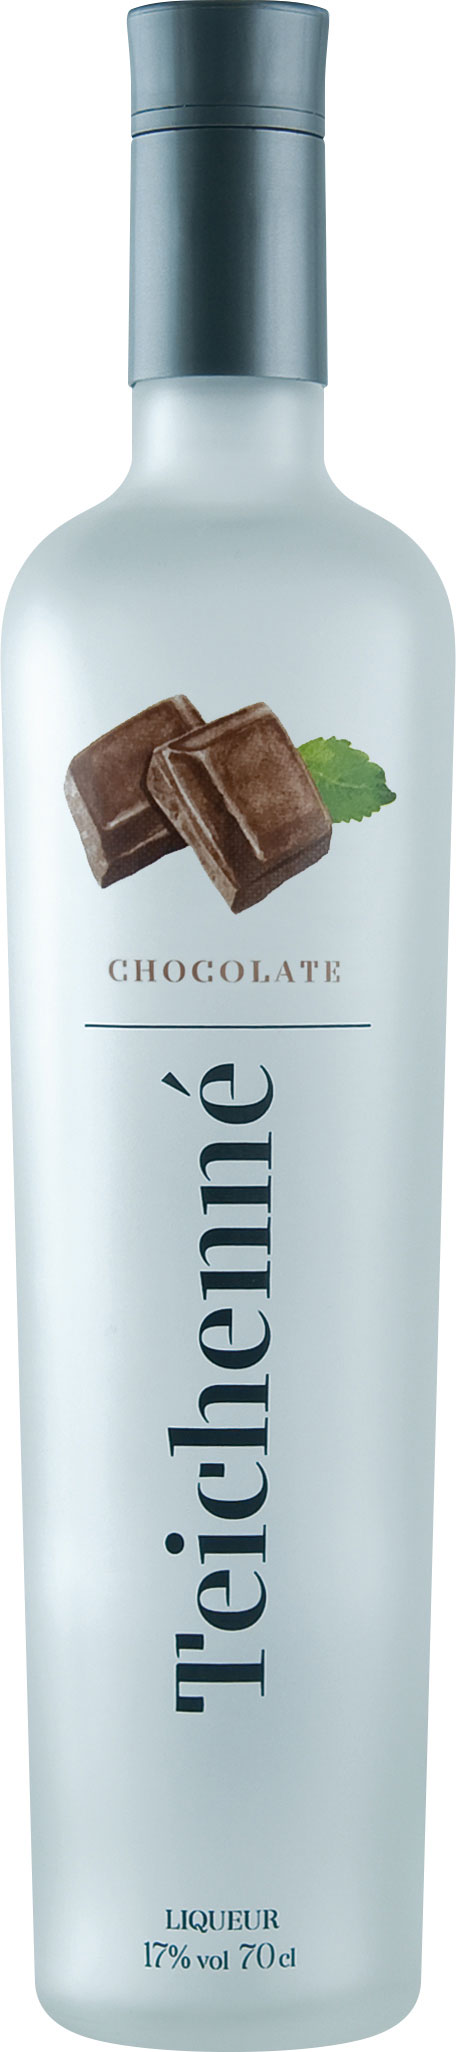 TEICHENNE  Chocolate 70cl Bottle